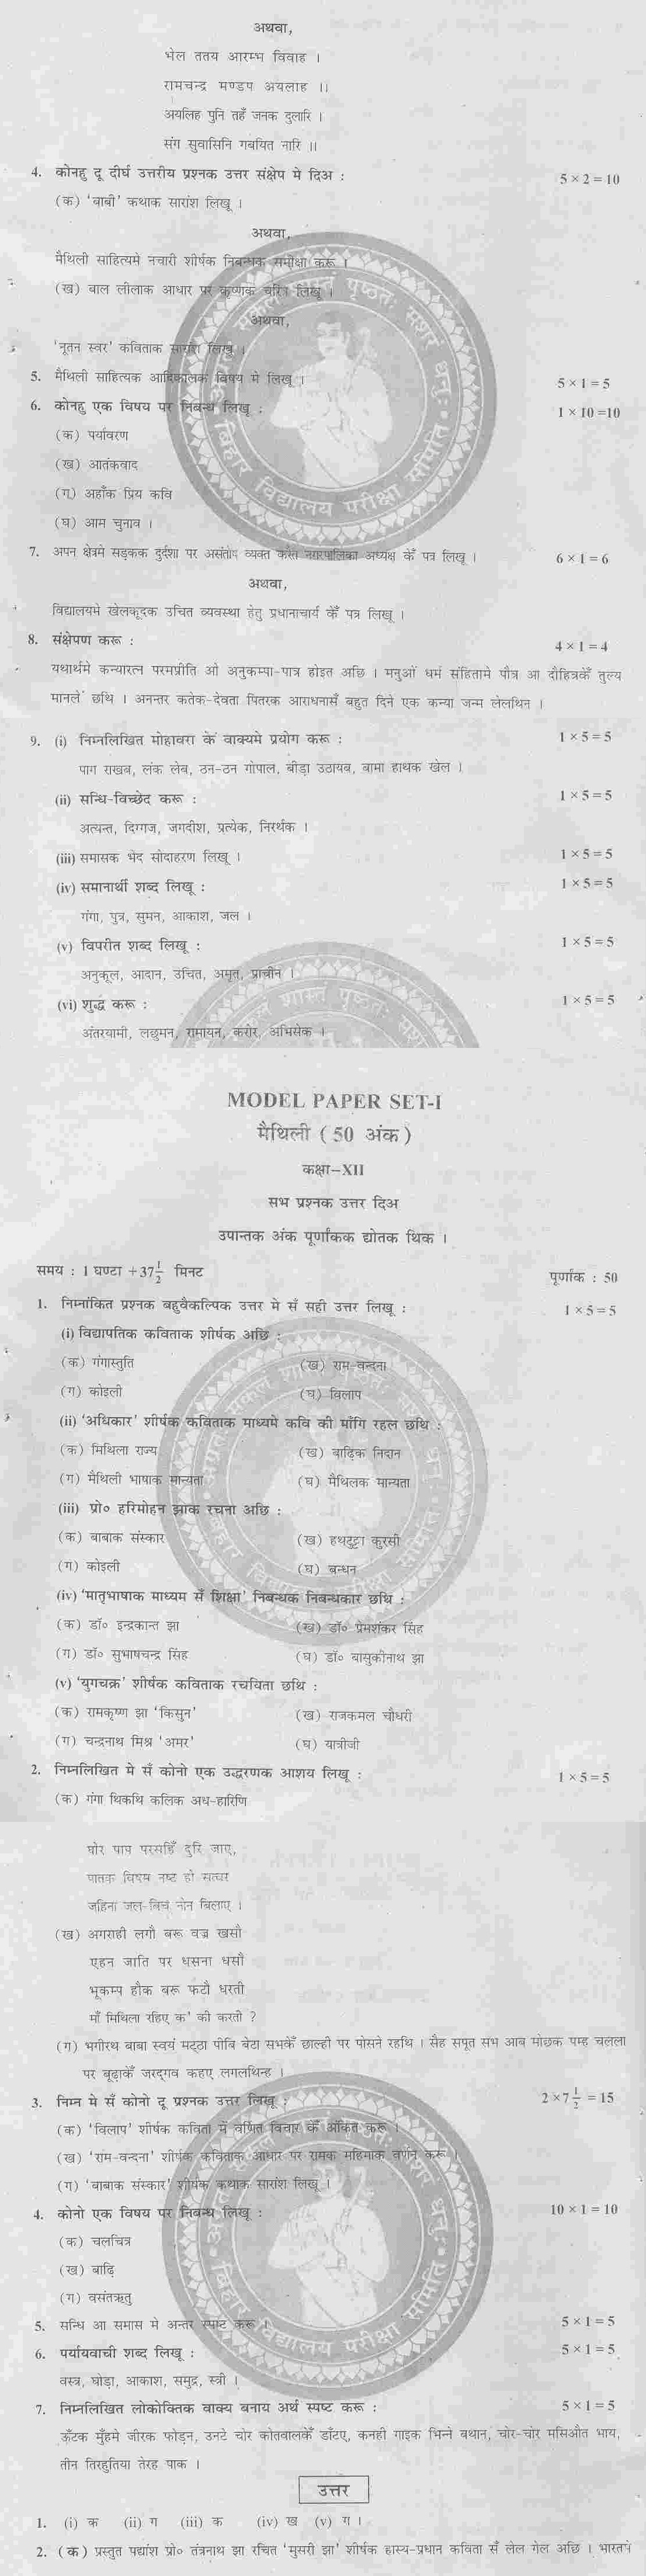 Bihar Board Class XII Humanities Model Question Papers - Maithilli